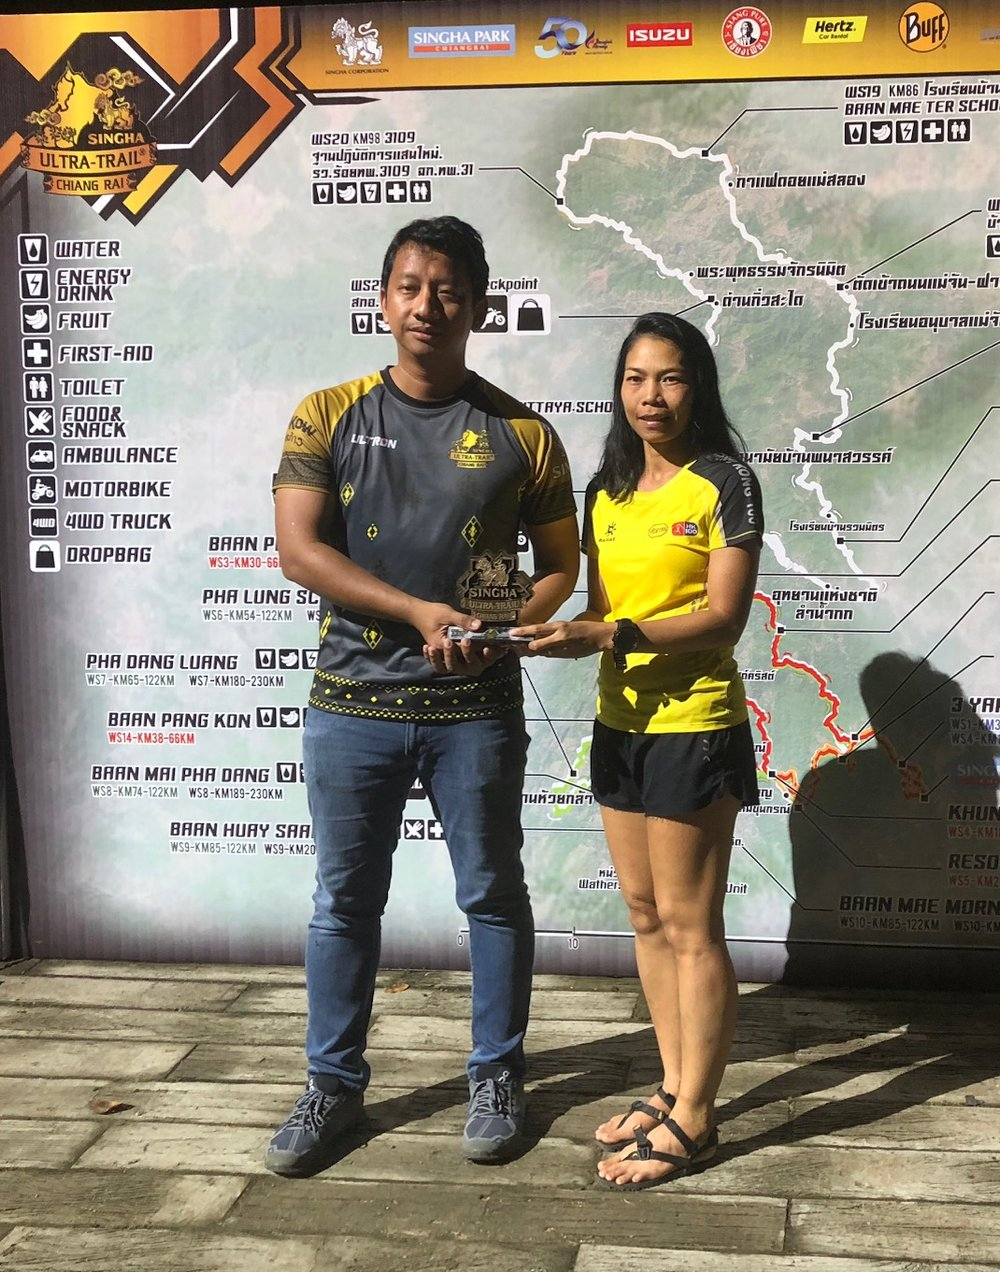 Montha Suntornwit was the big winner of the Ultimate 230 in Chiang Rai last October